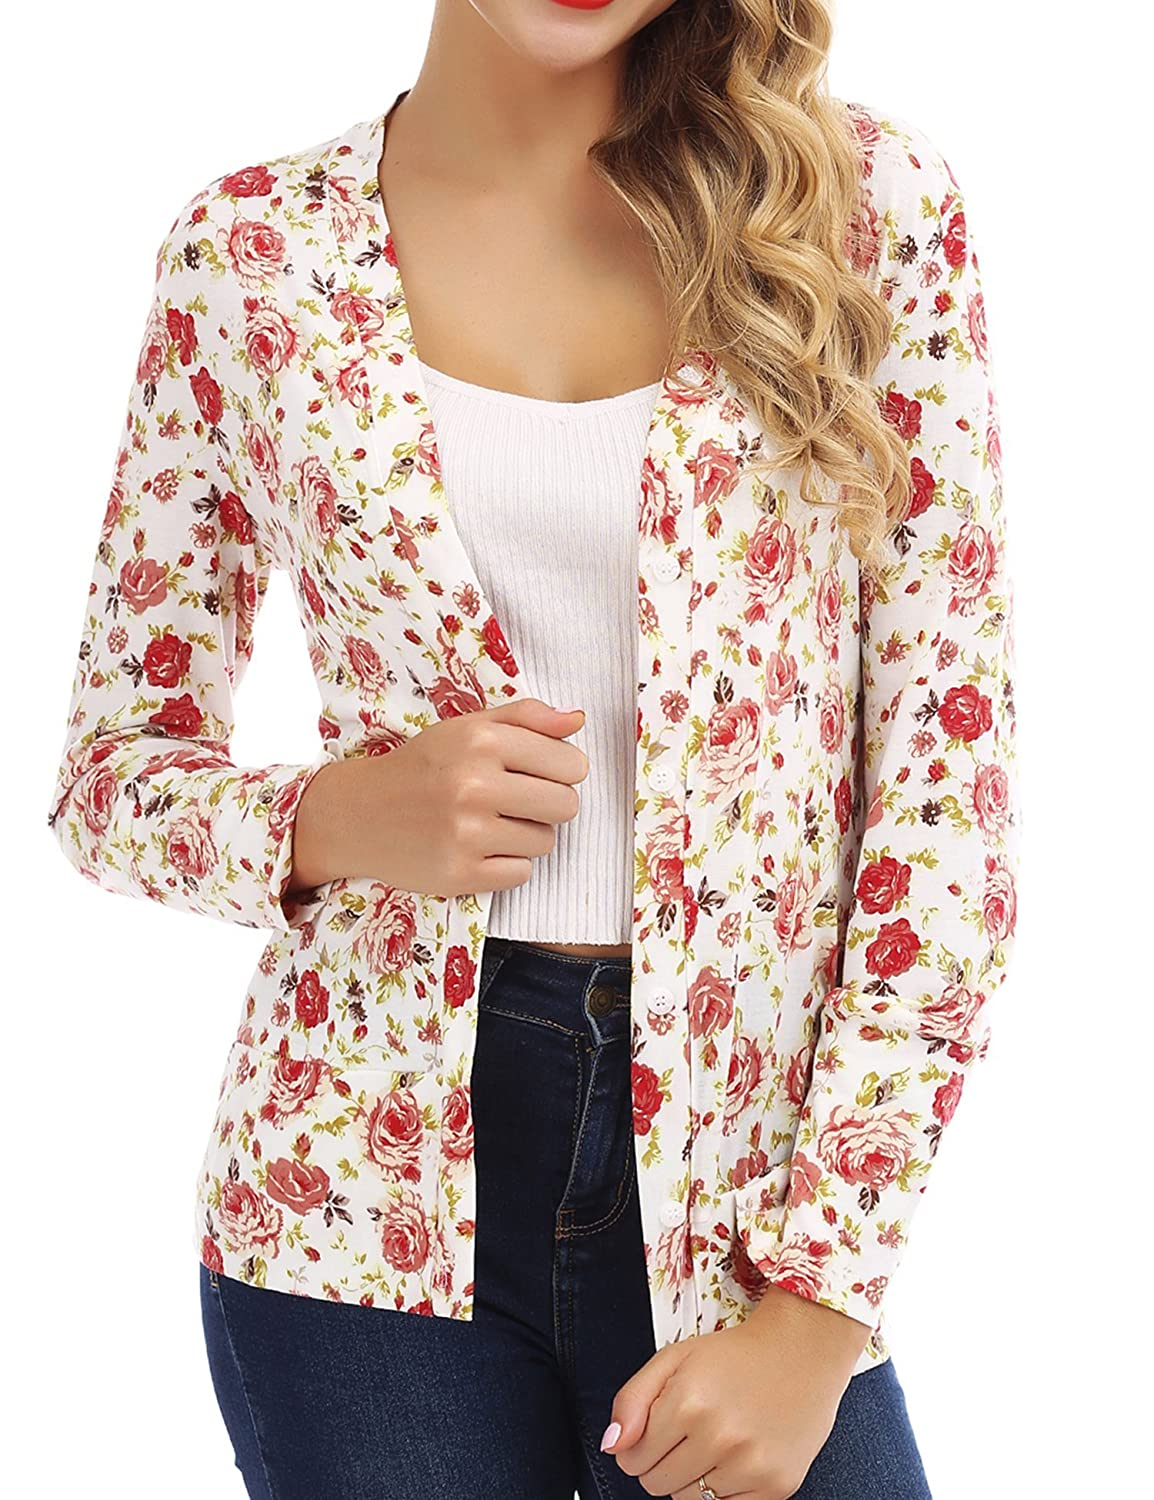 FISOUL Kimono Cardigan Button Floral Long Sleeve Casual Cardigans for Women